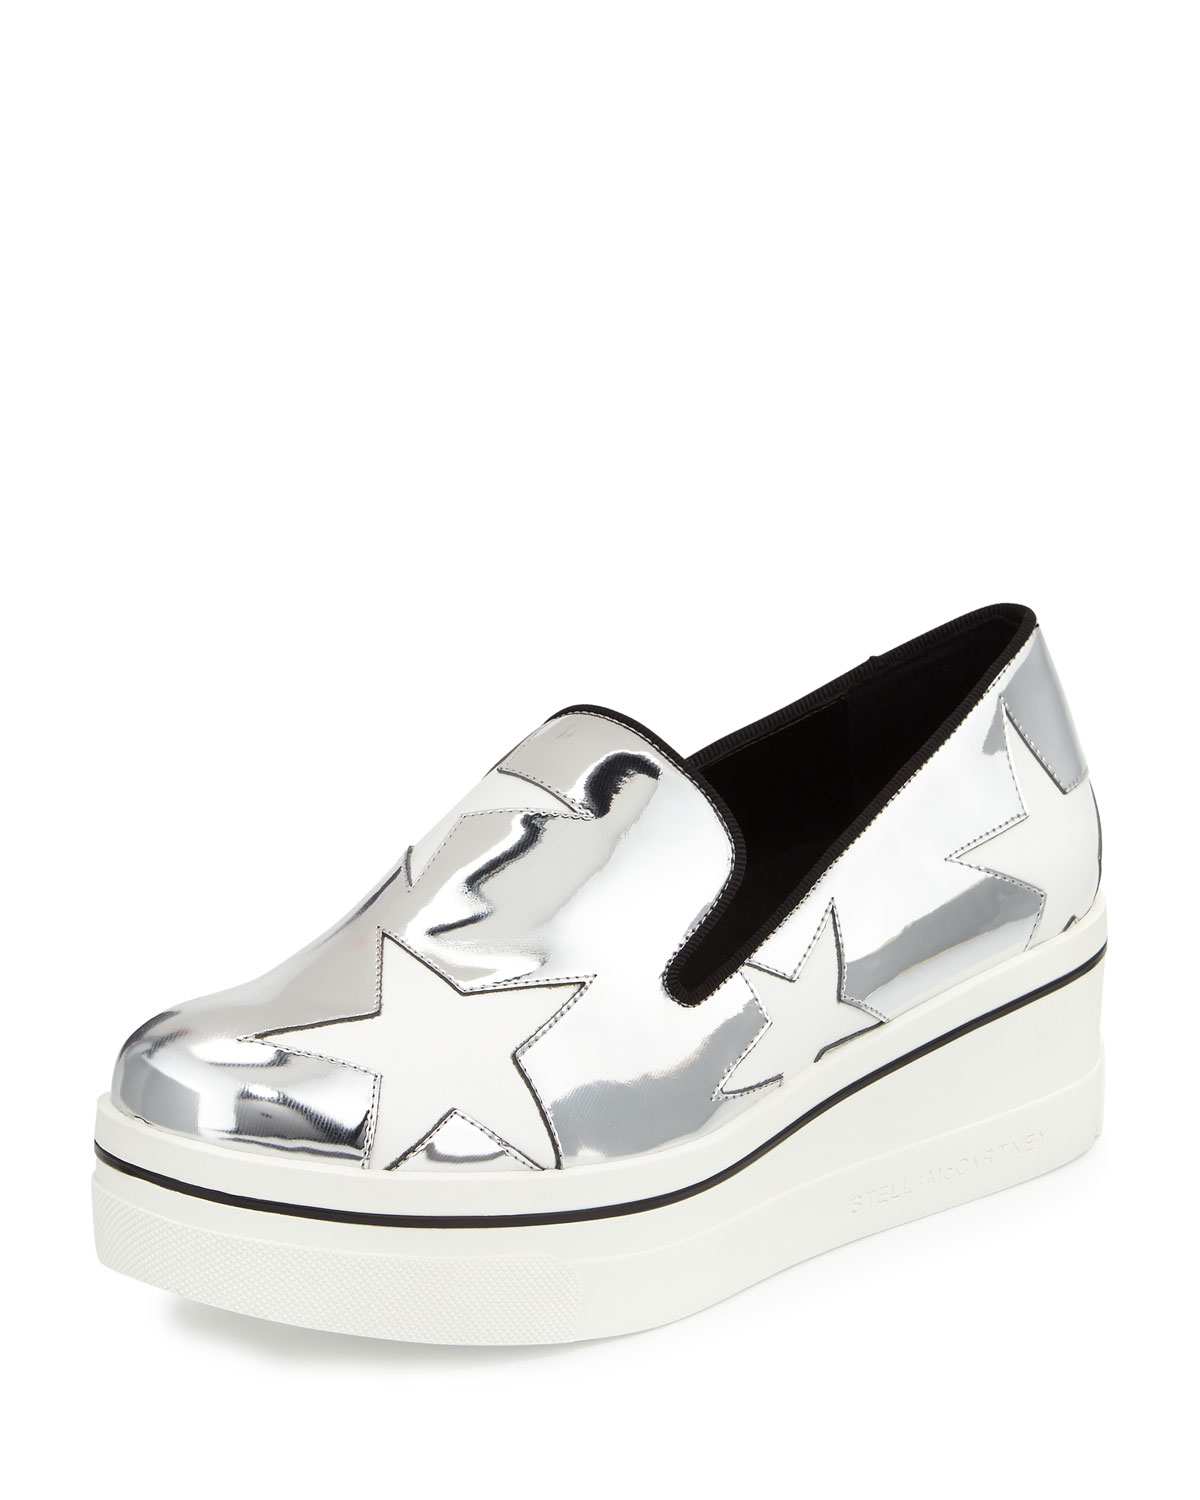 8006dd5d7ba Stella McCartney Binx Metallic Star Loafer